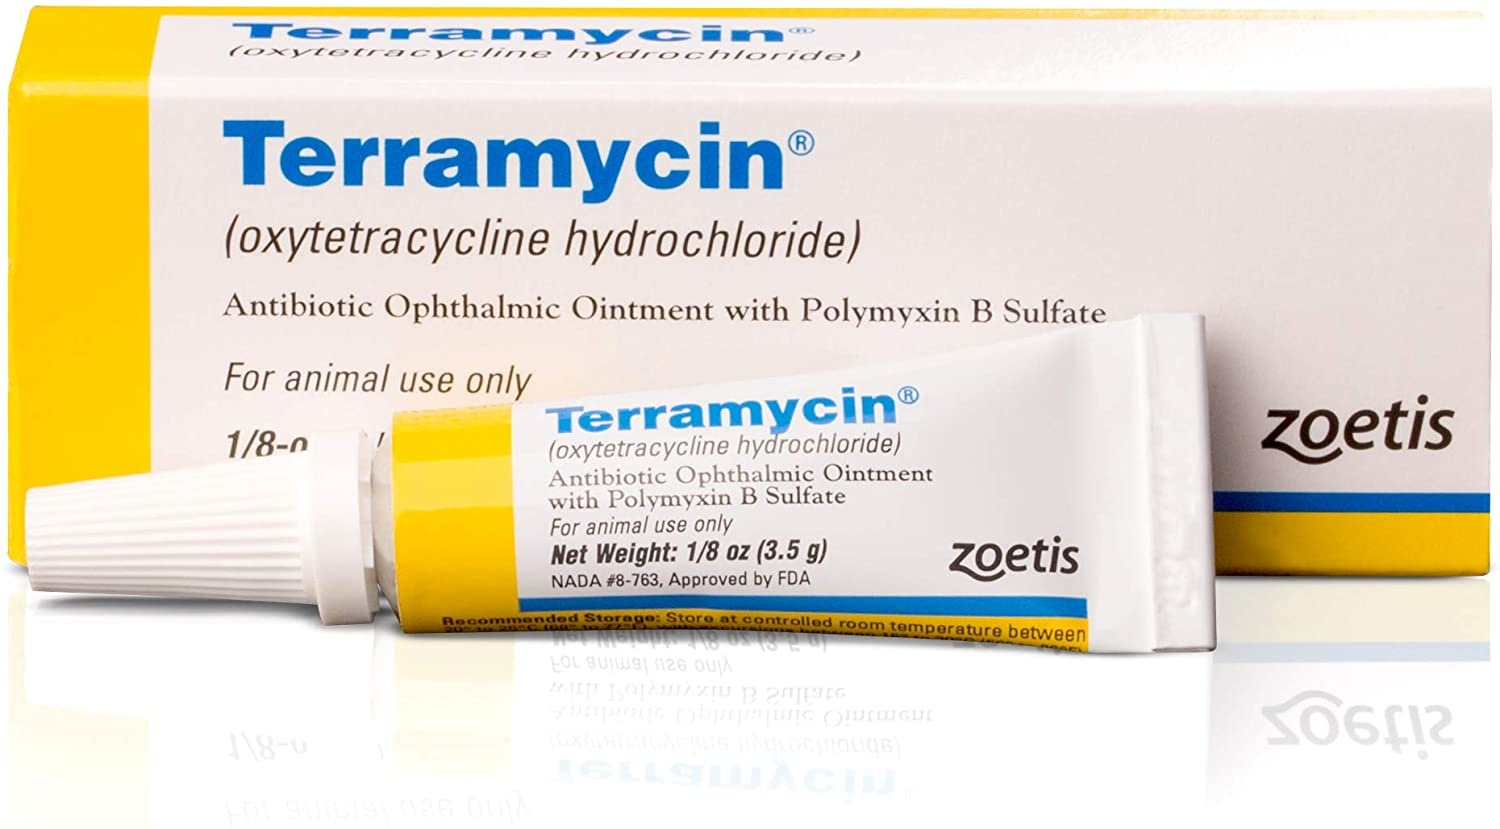 Zoetis Terramycin Ophthalmic Ointment